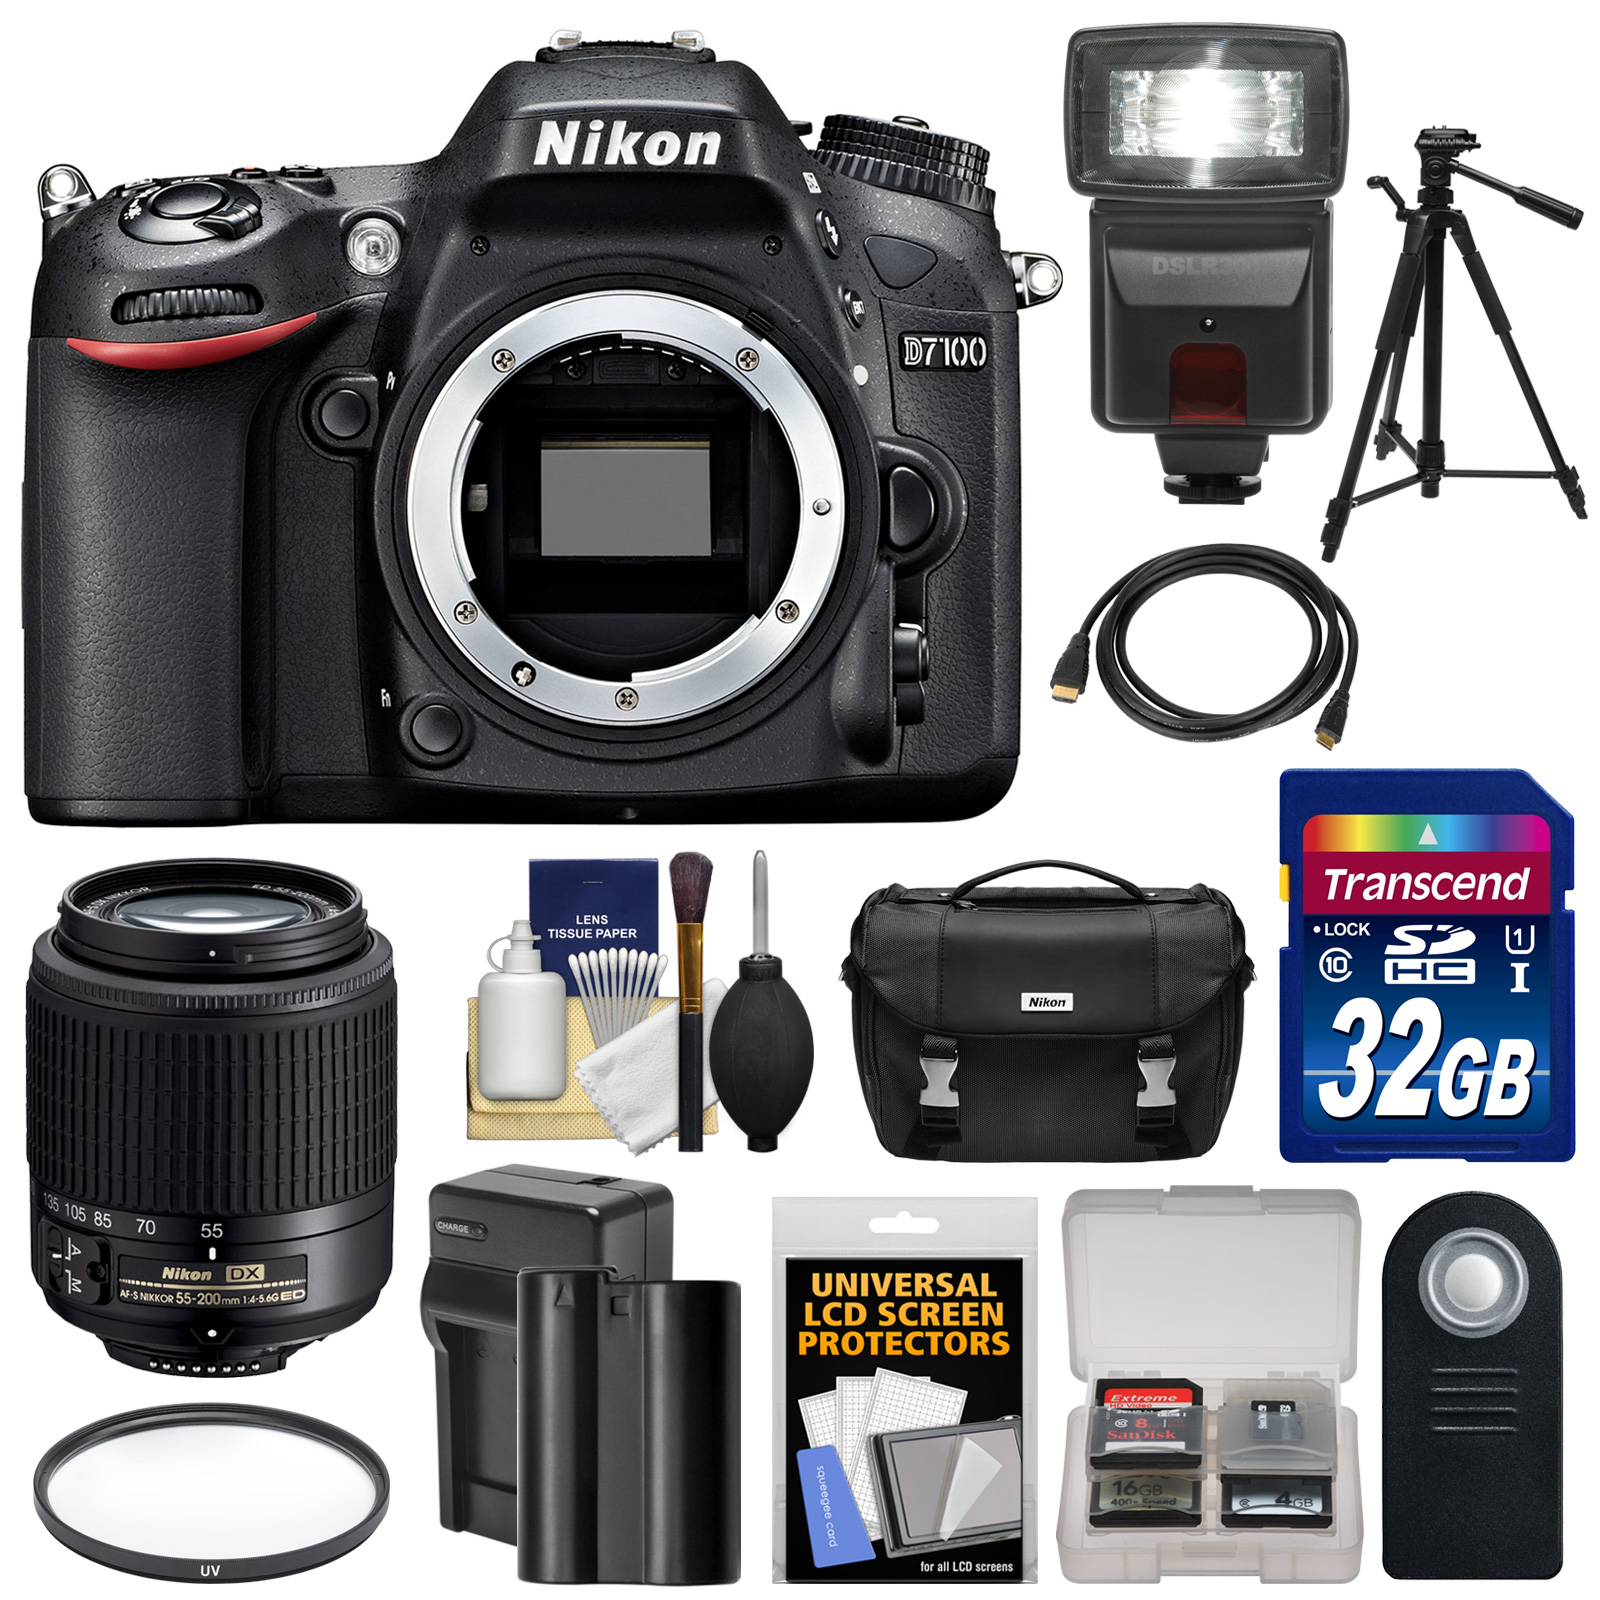 Nikon D7100 Digital SLR Camera Body with 55-200mm DX AF-S Lens + 32GB Card + Battery & Charger + Case + Tripod + Flash + Kit